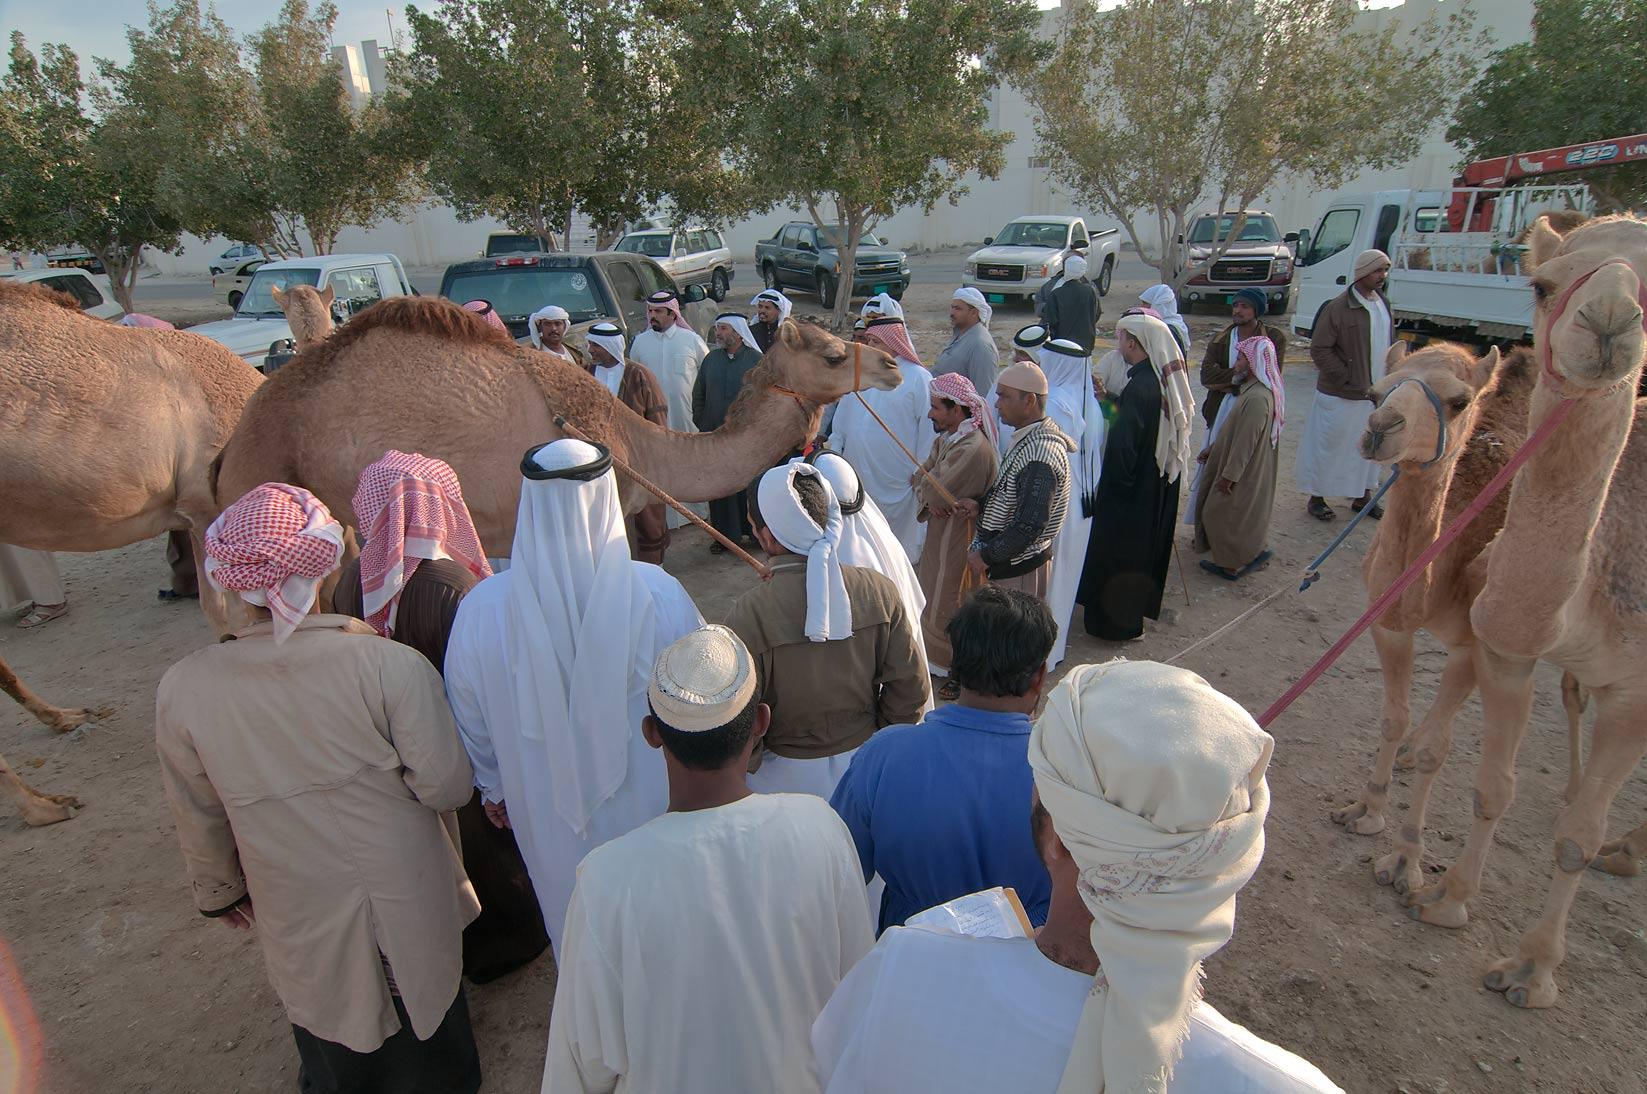 Gathering at Camel Market (Souq), for racing. Doha, Qatar